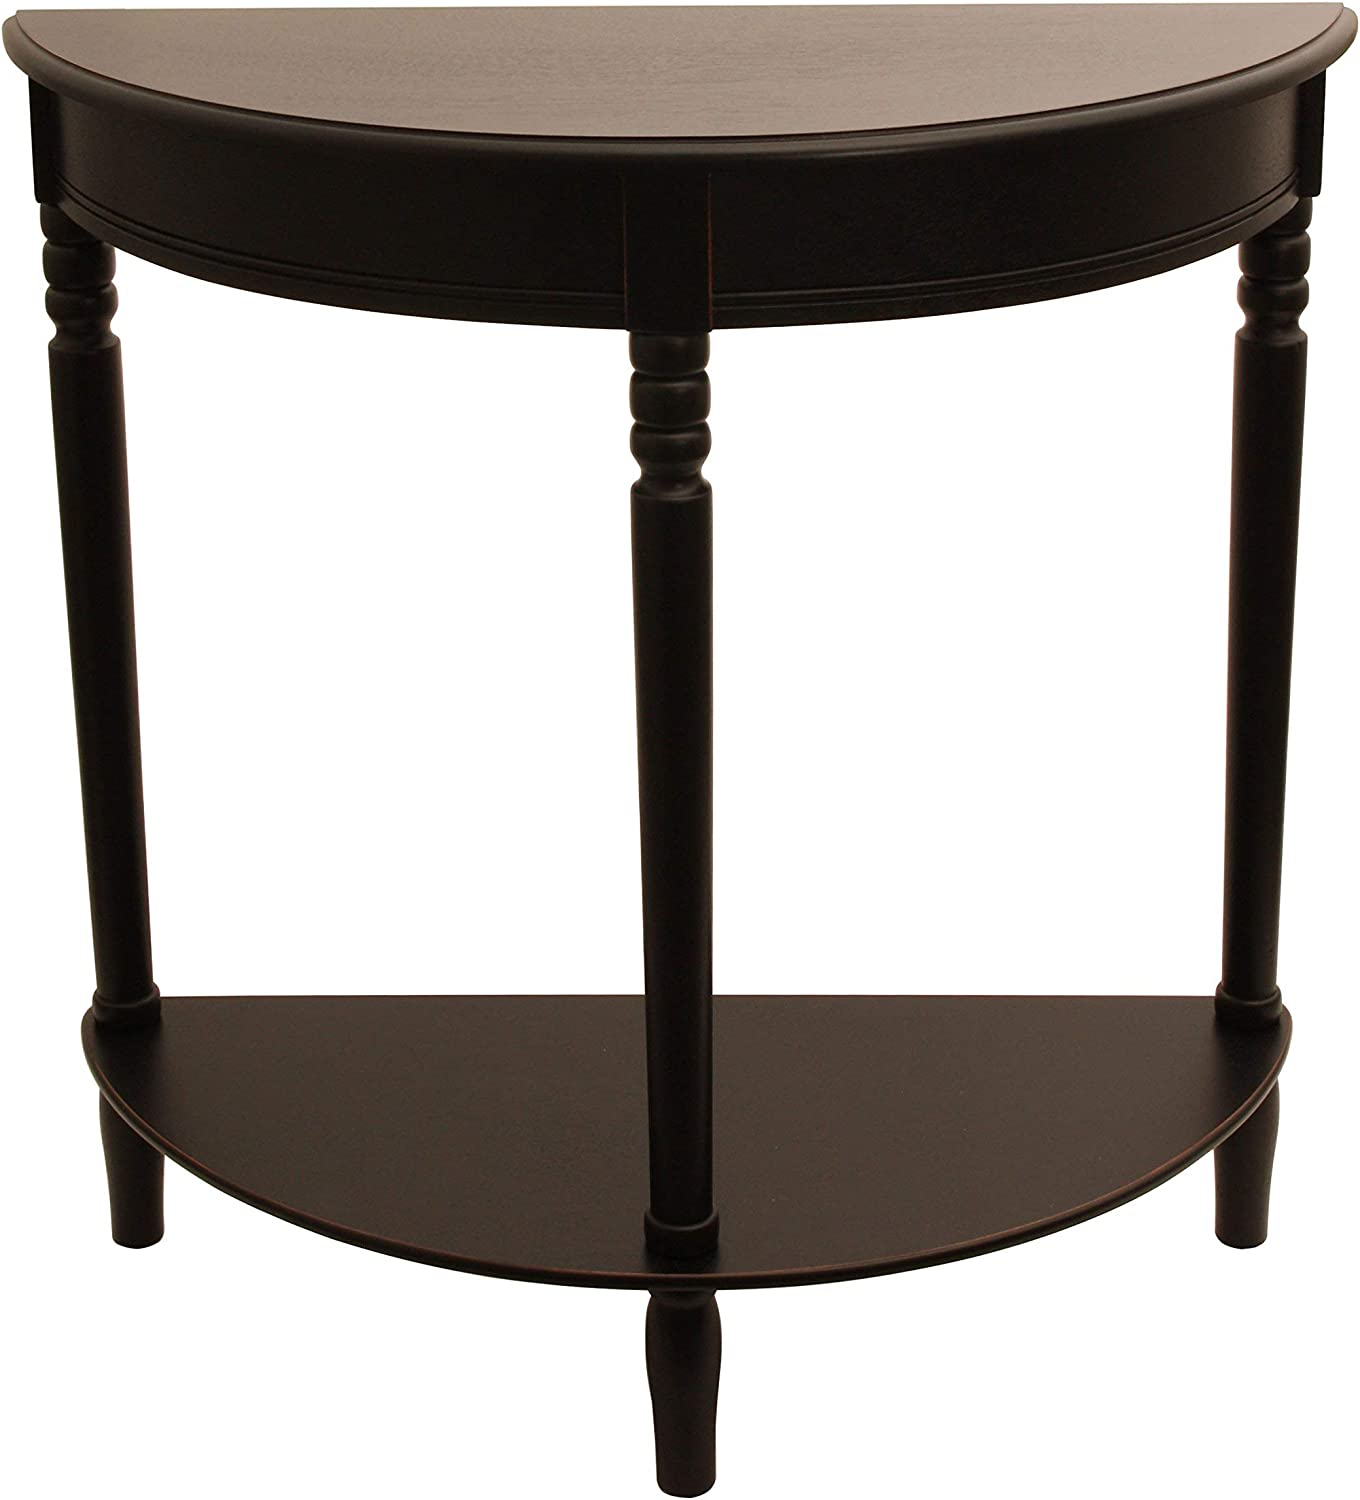 Décor Therapy Fr1799 End Table, Eased Edge Black